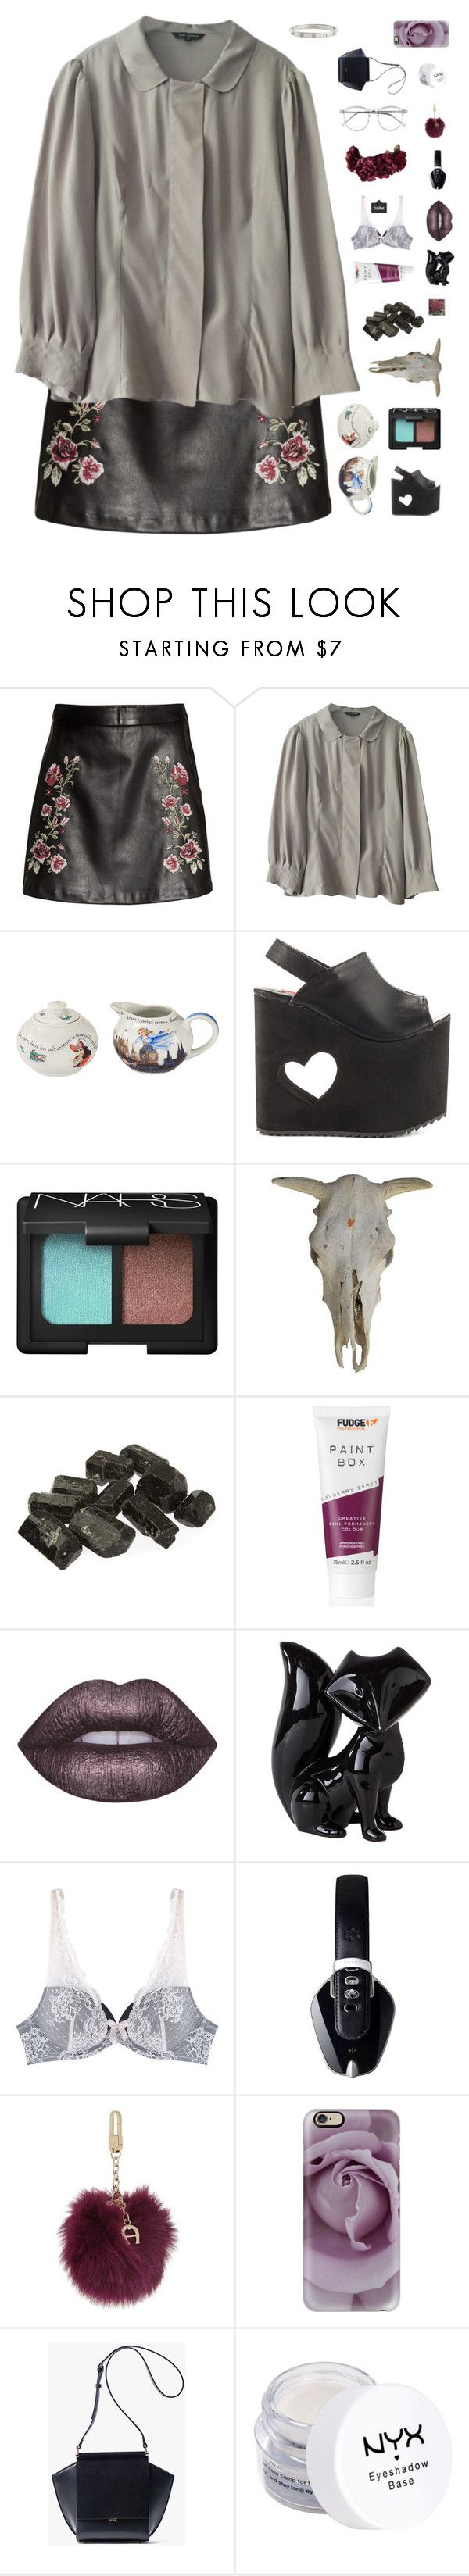 """""""♡ you're always gonna fly away , just because you know you can"""" by wont-stop-loving-queen-rydel ❤ liked on Polyvore featuring Tara Jarmon, Cardew Design, Y.R.U., NARS Cosmetics, Lime Crime, Dot & Bo, Christian Lacroix, Pryma, Etienne Aigner and Casetify"""